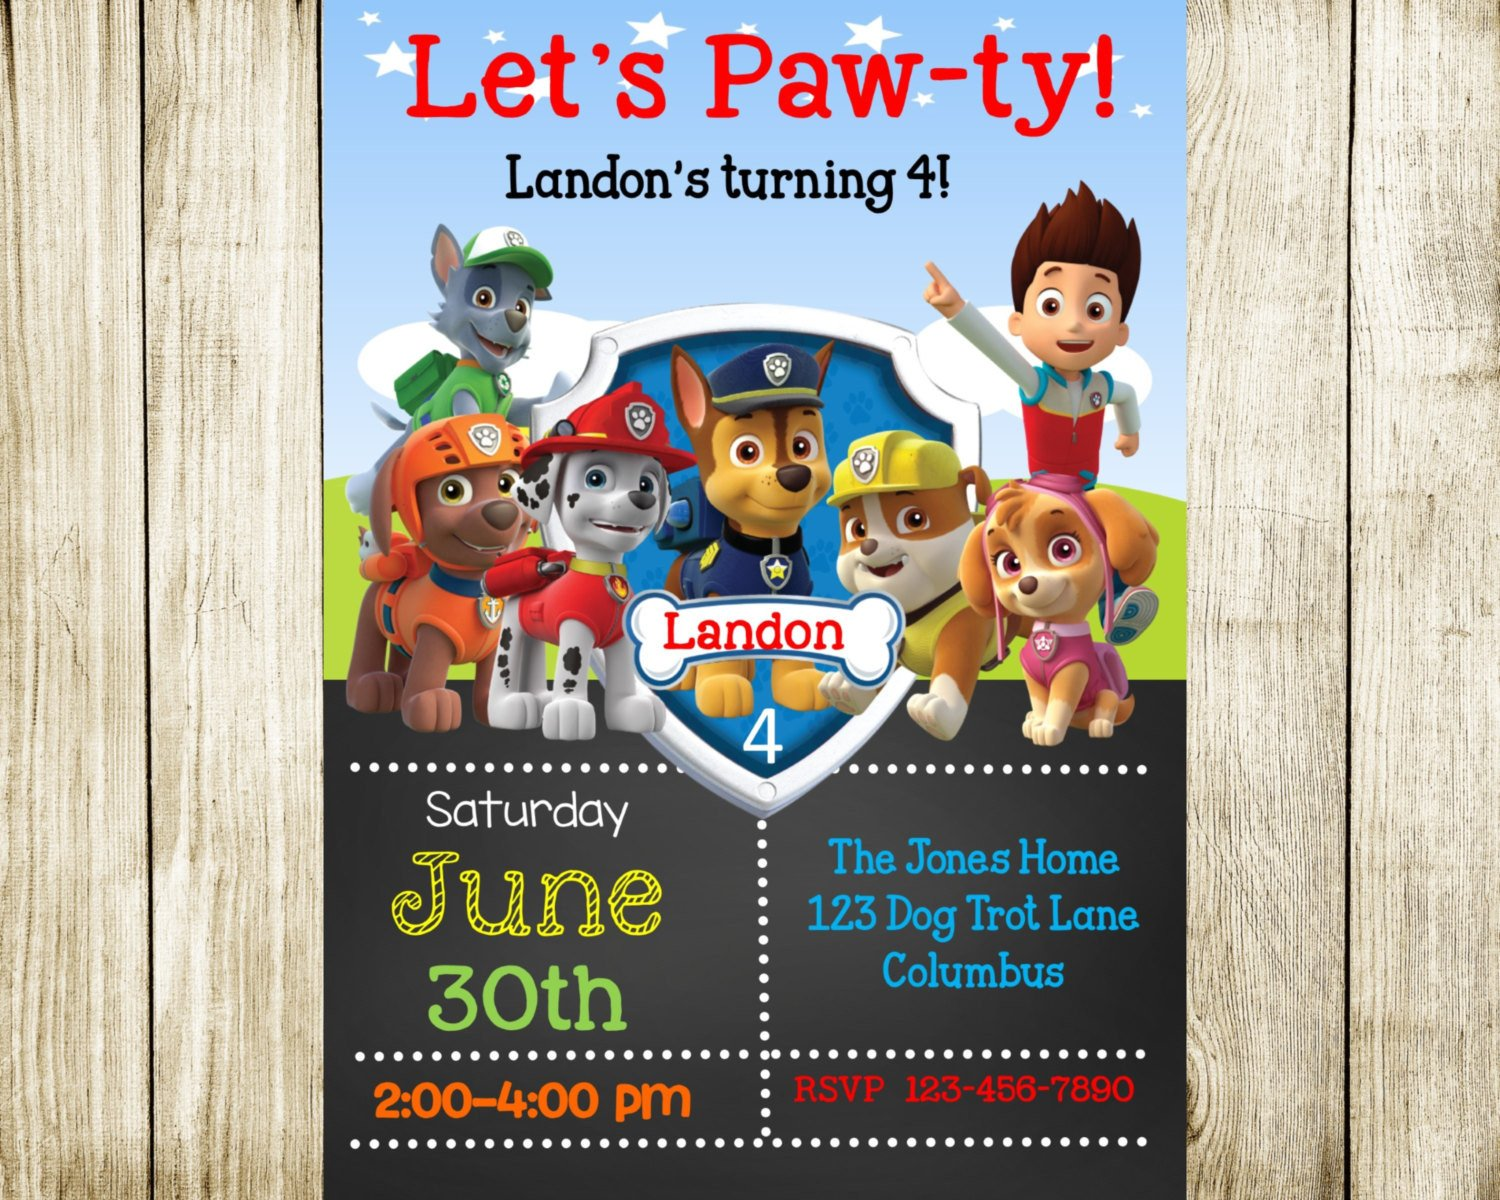 Free Paw Patrol Invitation Template Paw Patrol Birthday Paw Patrol Invitation by Needmoredesigns